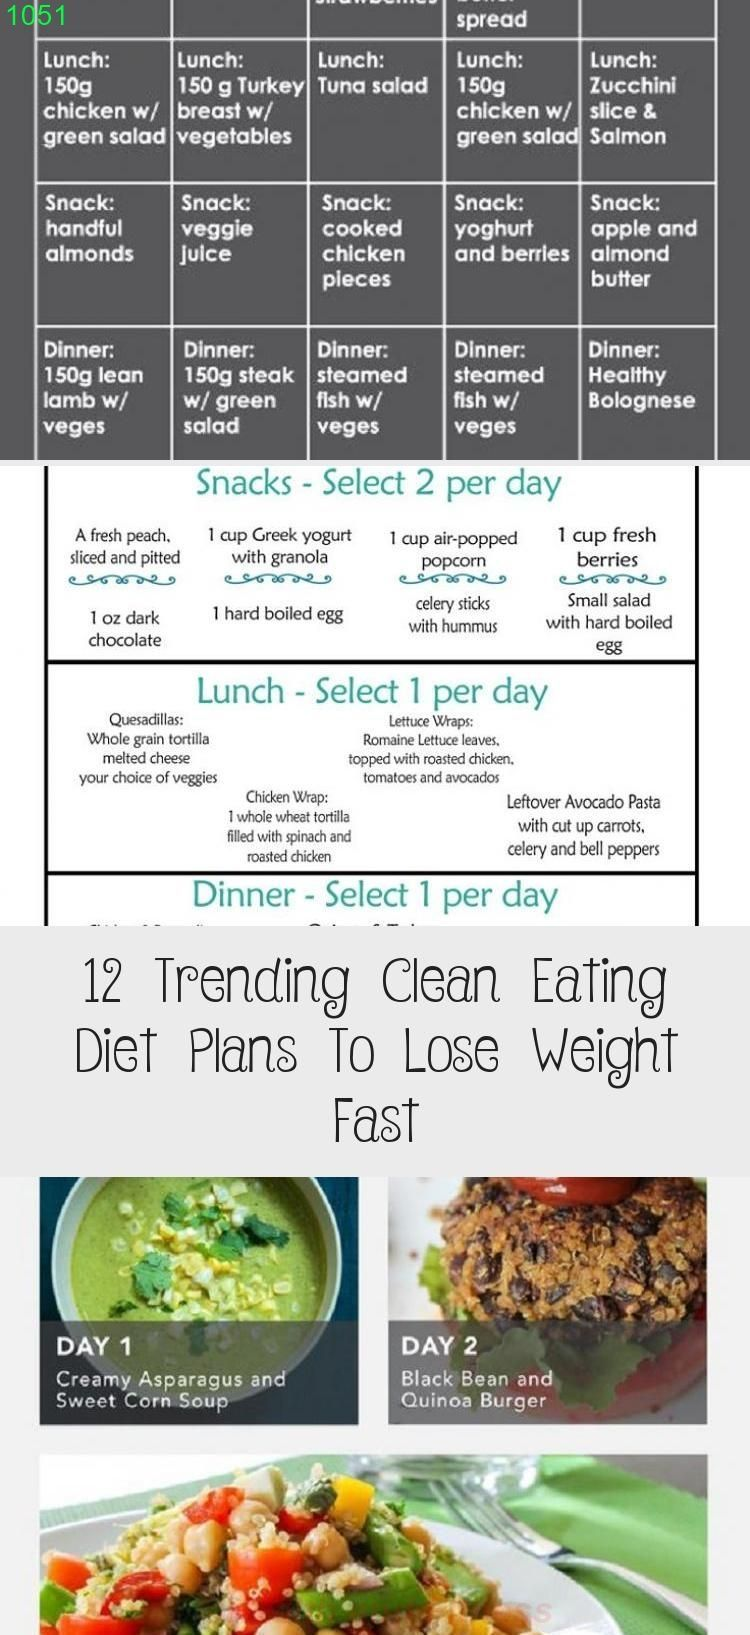 Leptitox Weight Loss – Carey&CleanEatingS